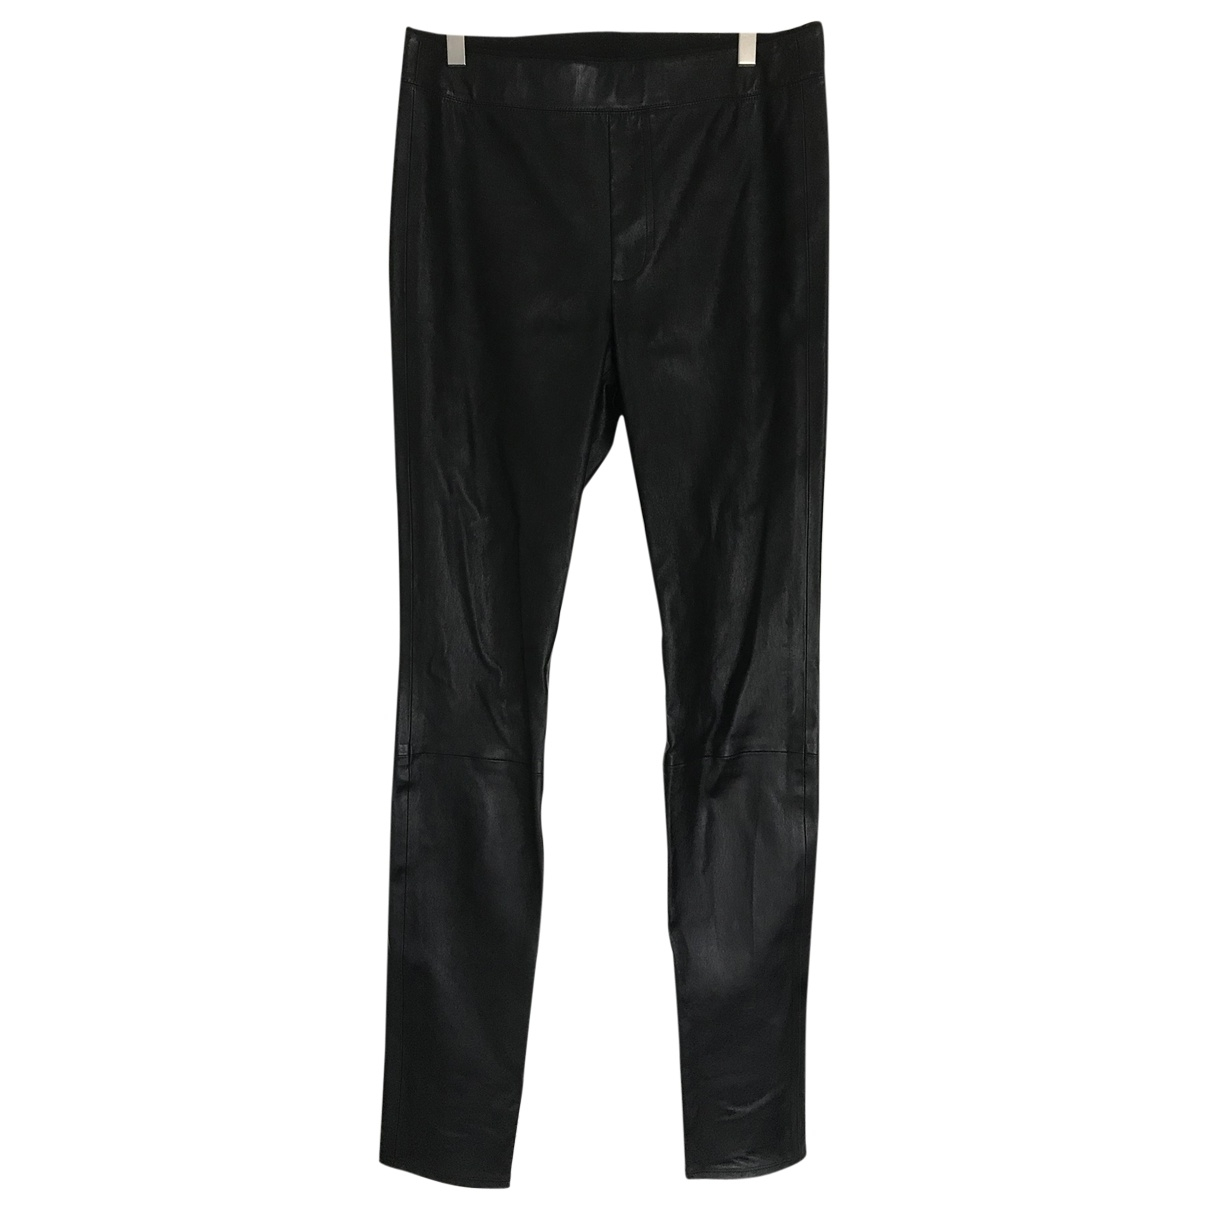 Helmut Lang \N Black Leather Trousers for Women 8 US